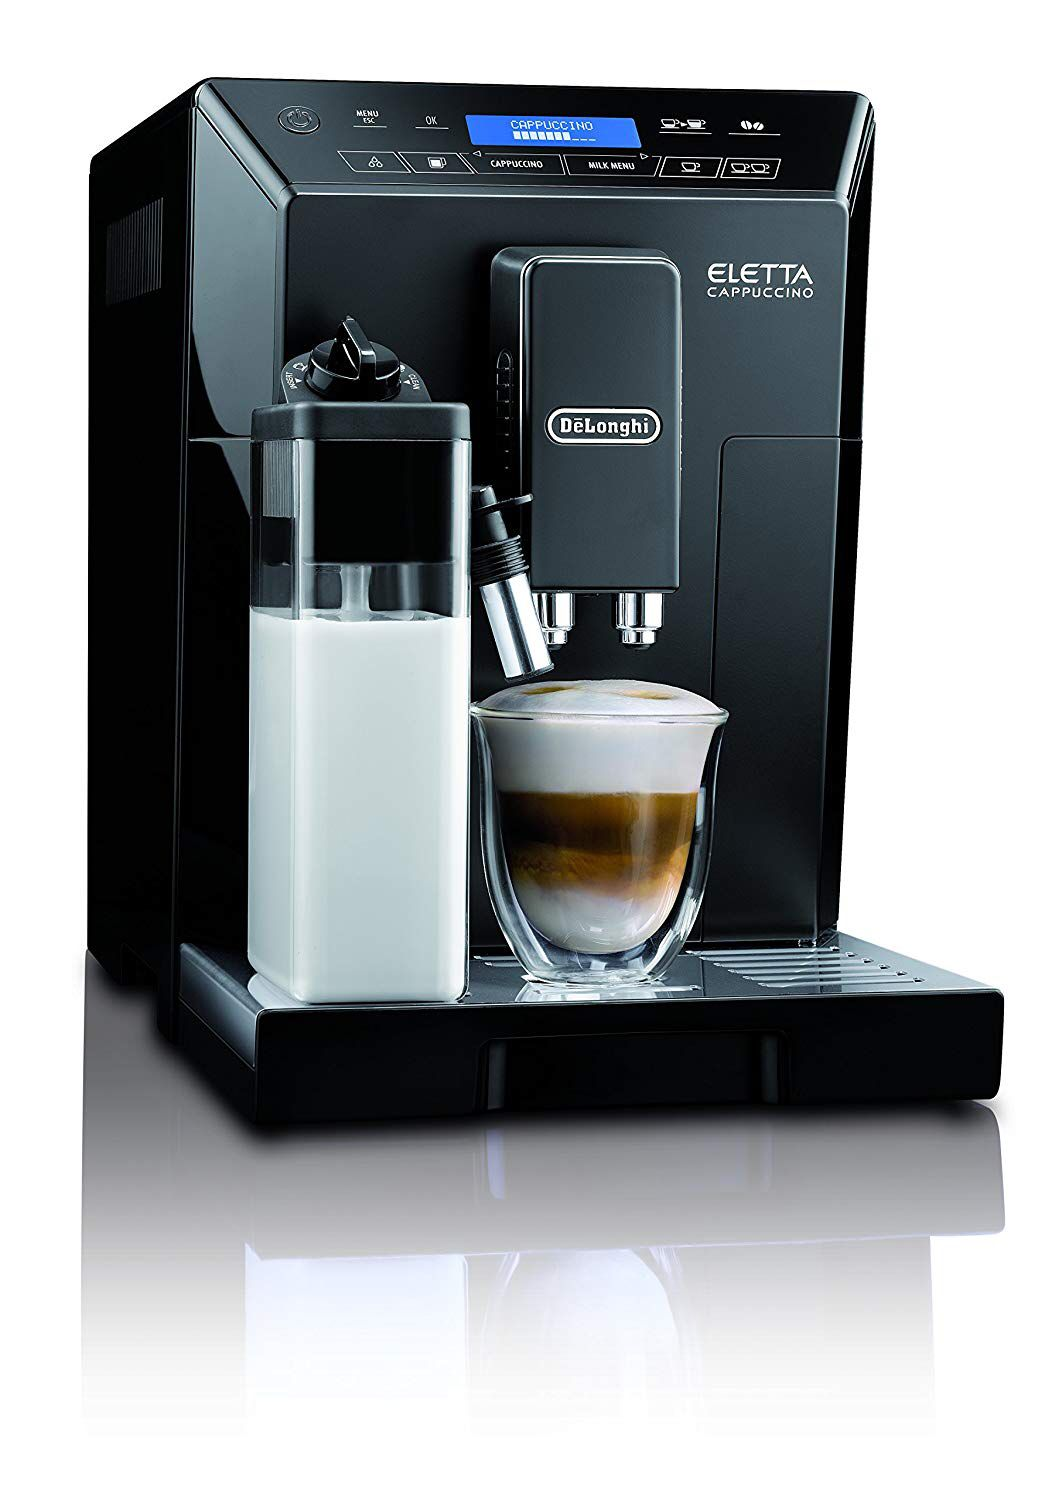 One of the best bean to cup coffee machines on the market